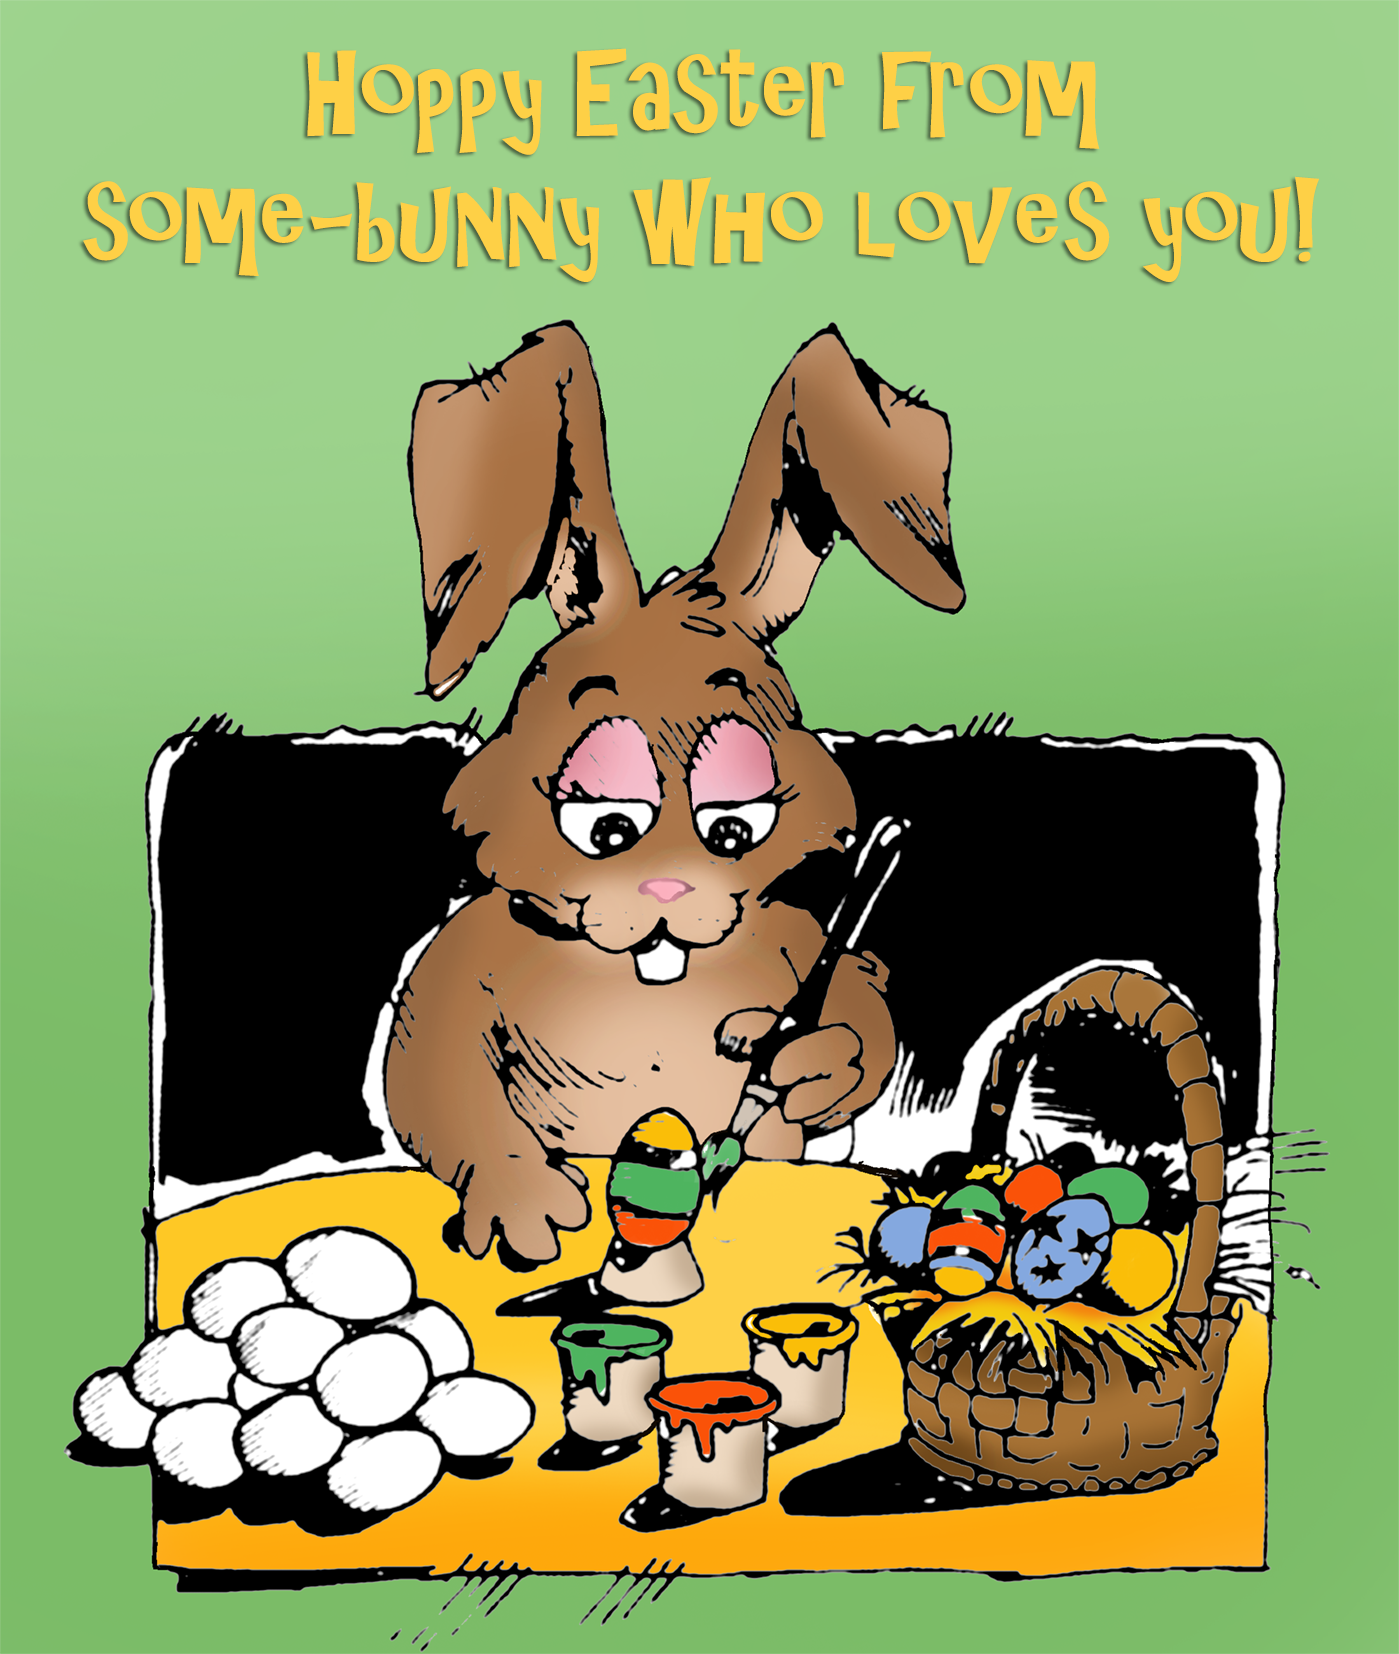 Cute Easter card for kids with the Easter bunny painting eggs.